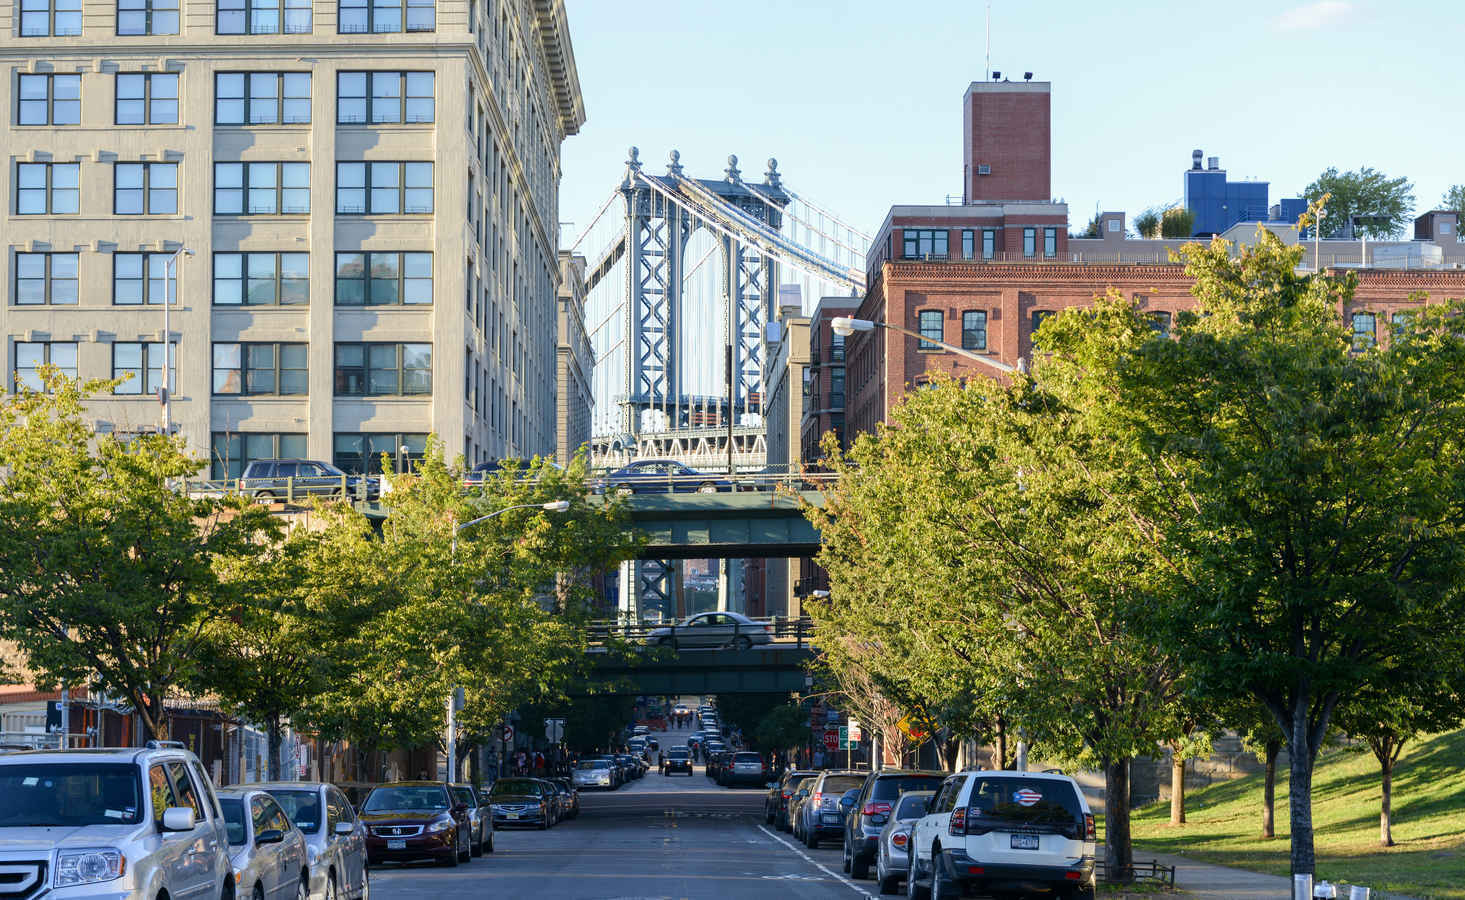 Urban, industrial architecture in Dumbo, Brooklyn